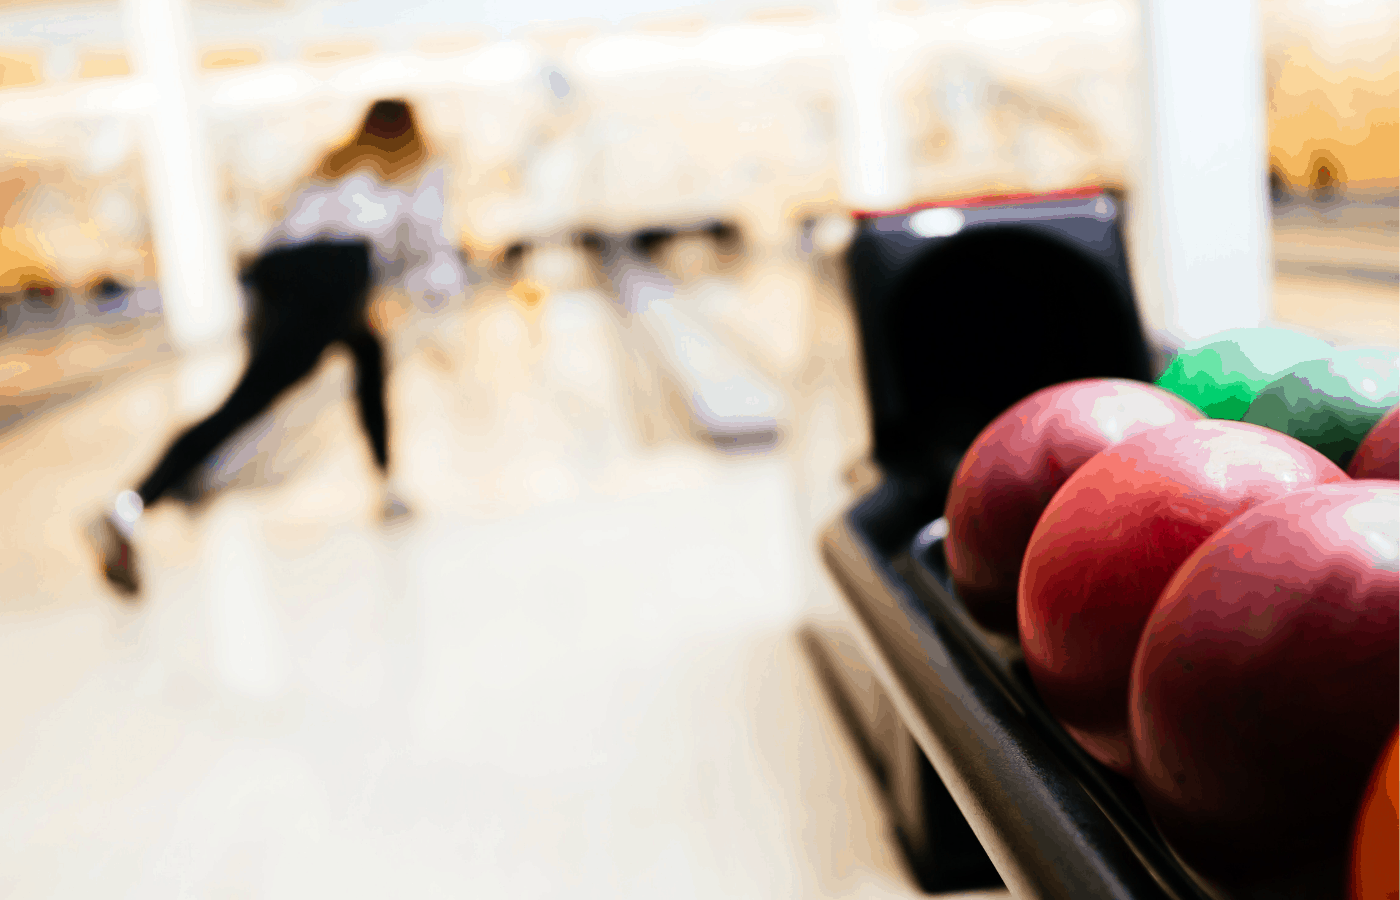 can i clean my bowling ball during league play